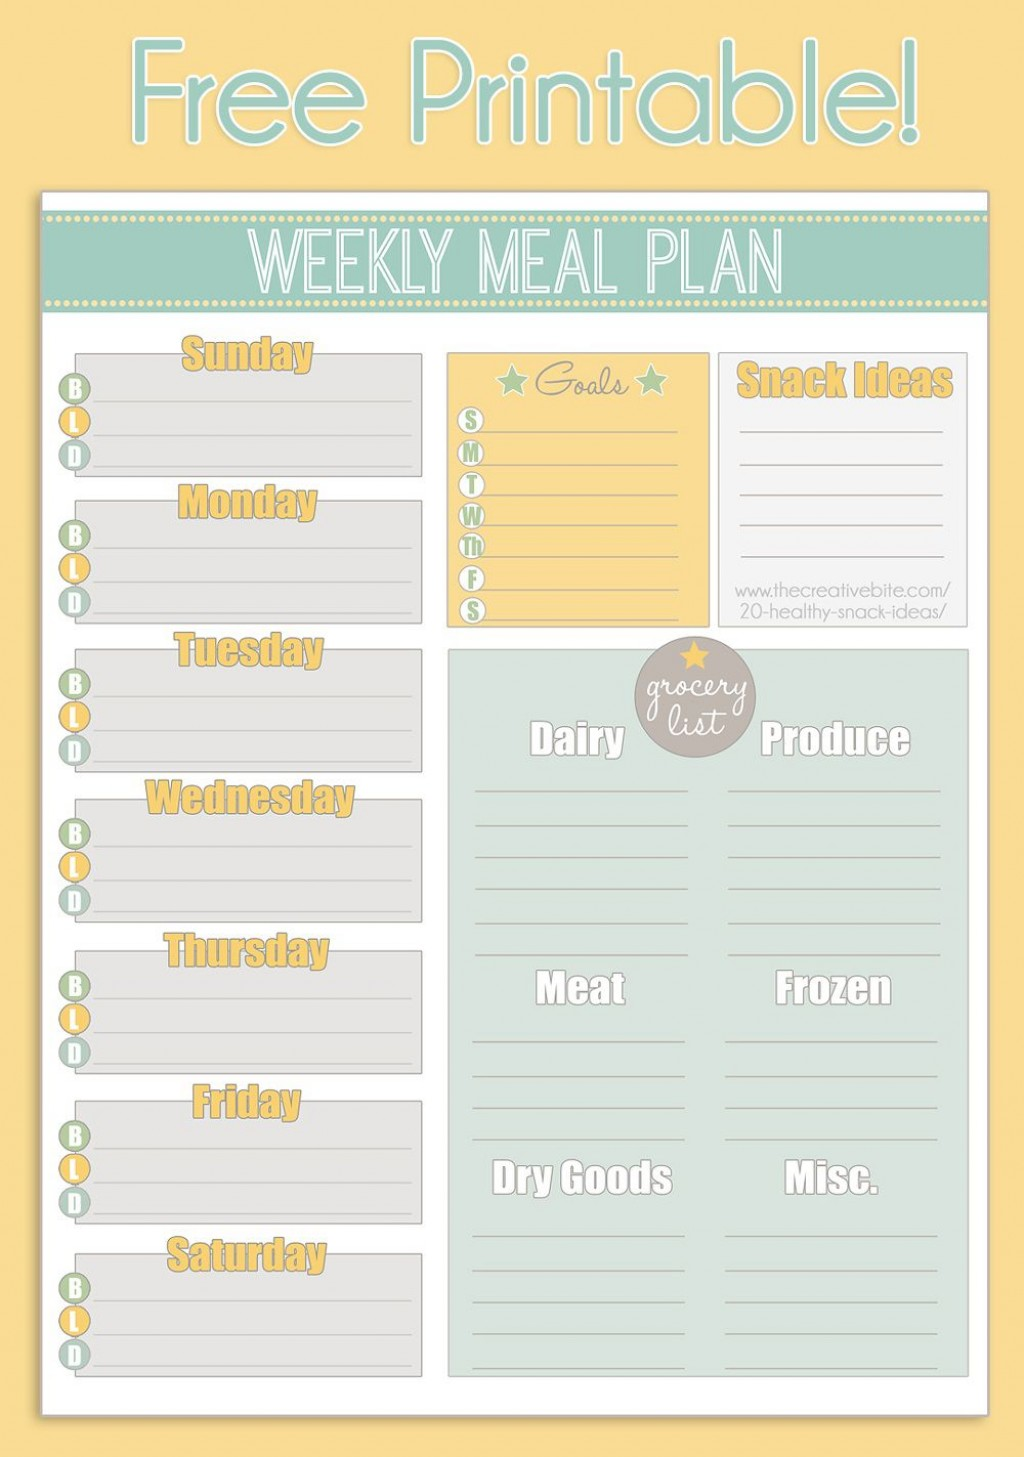 004 Archaicawful Meal Plan With Printable Grocery List Photo  Planning Template Excel FreeLarge